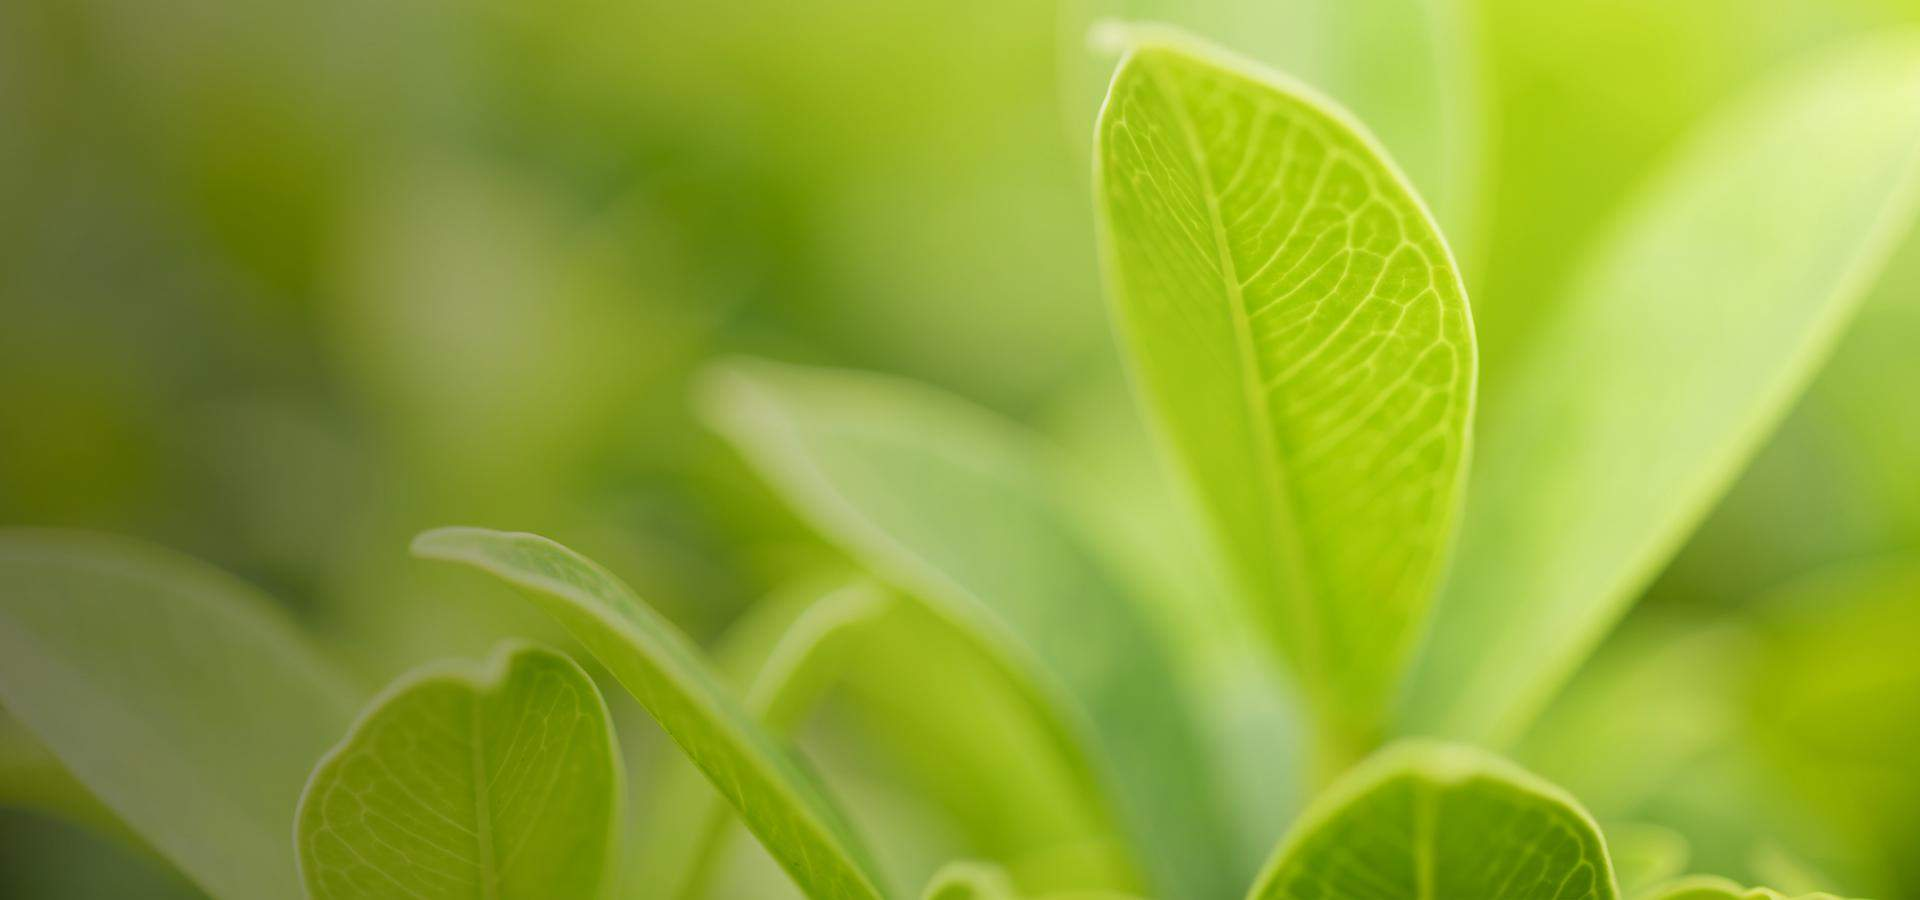 Close-up shot of bright green leaves, soft focus